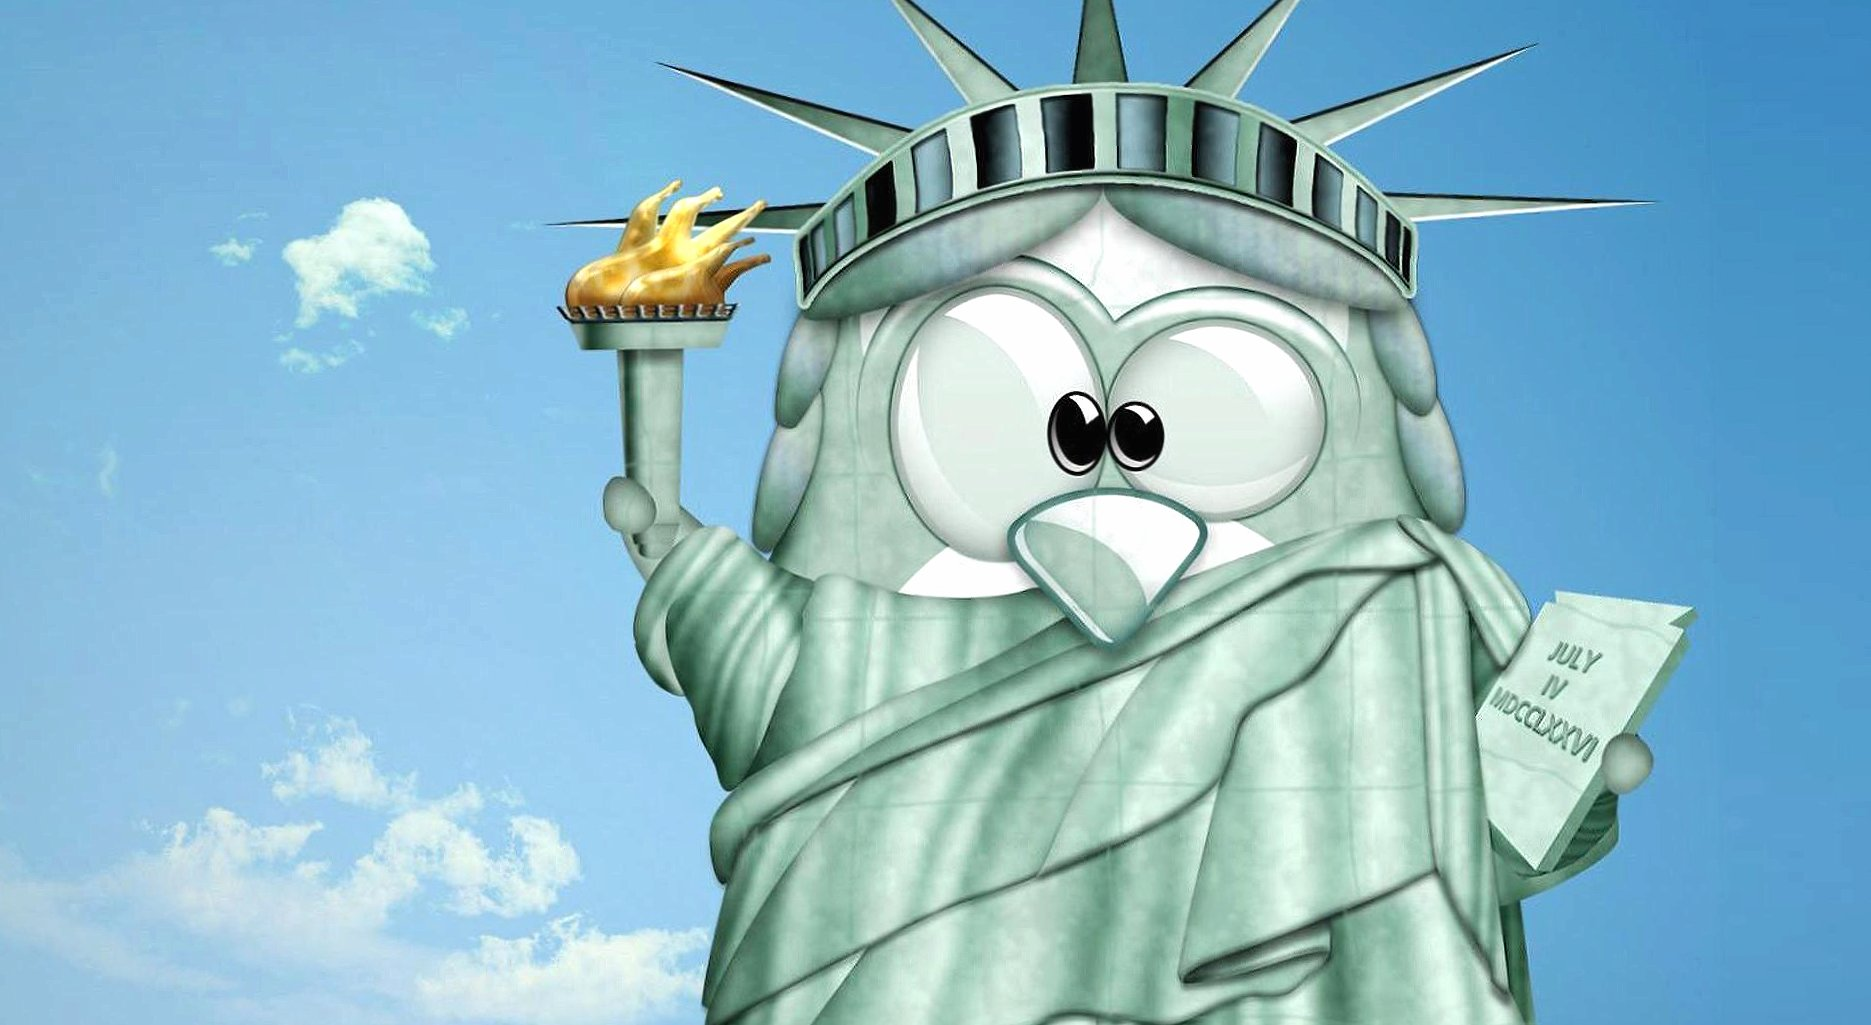 Funny bird statue of liberty wallpapers HD quality